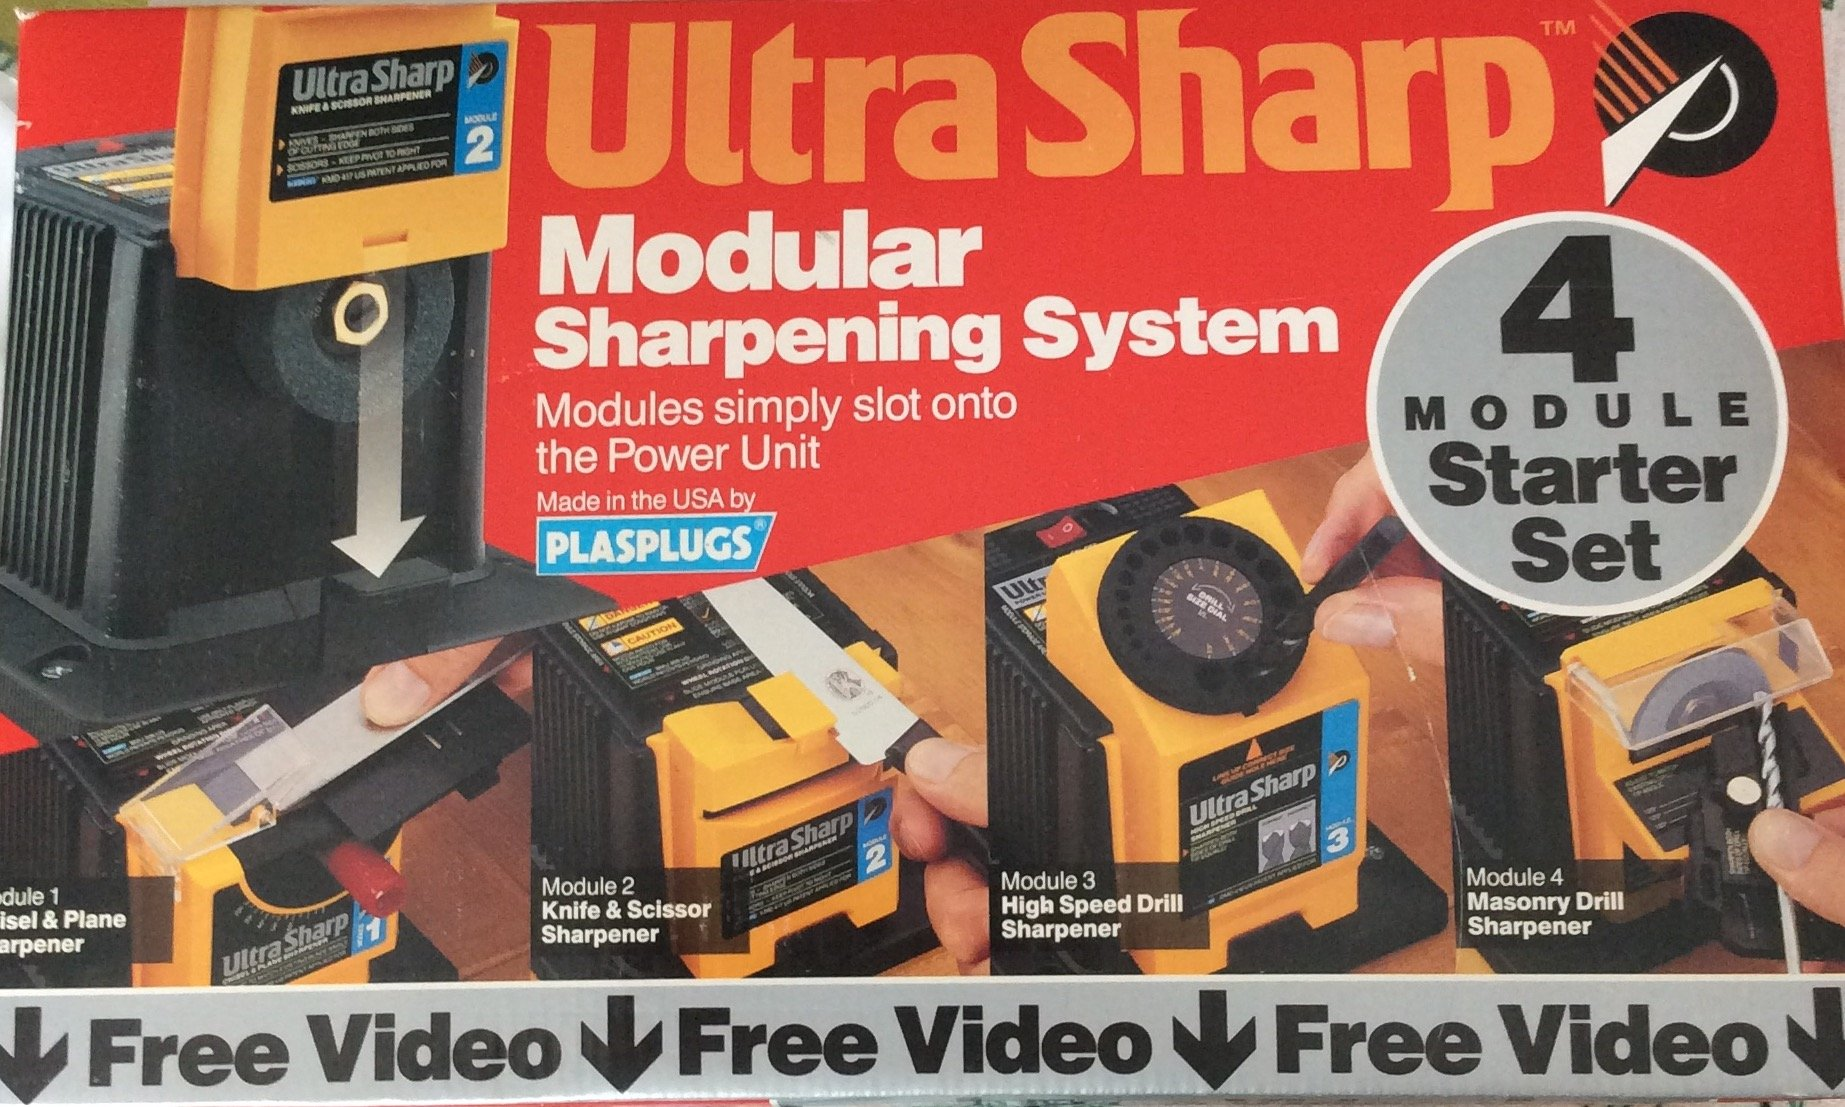 UltraSharp modular sharpening system by Plasplugs. Power unit with aluminum oxide grinding wheel. Chisel